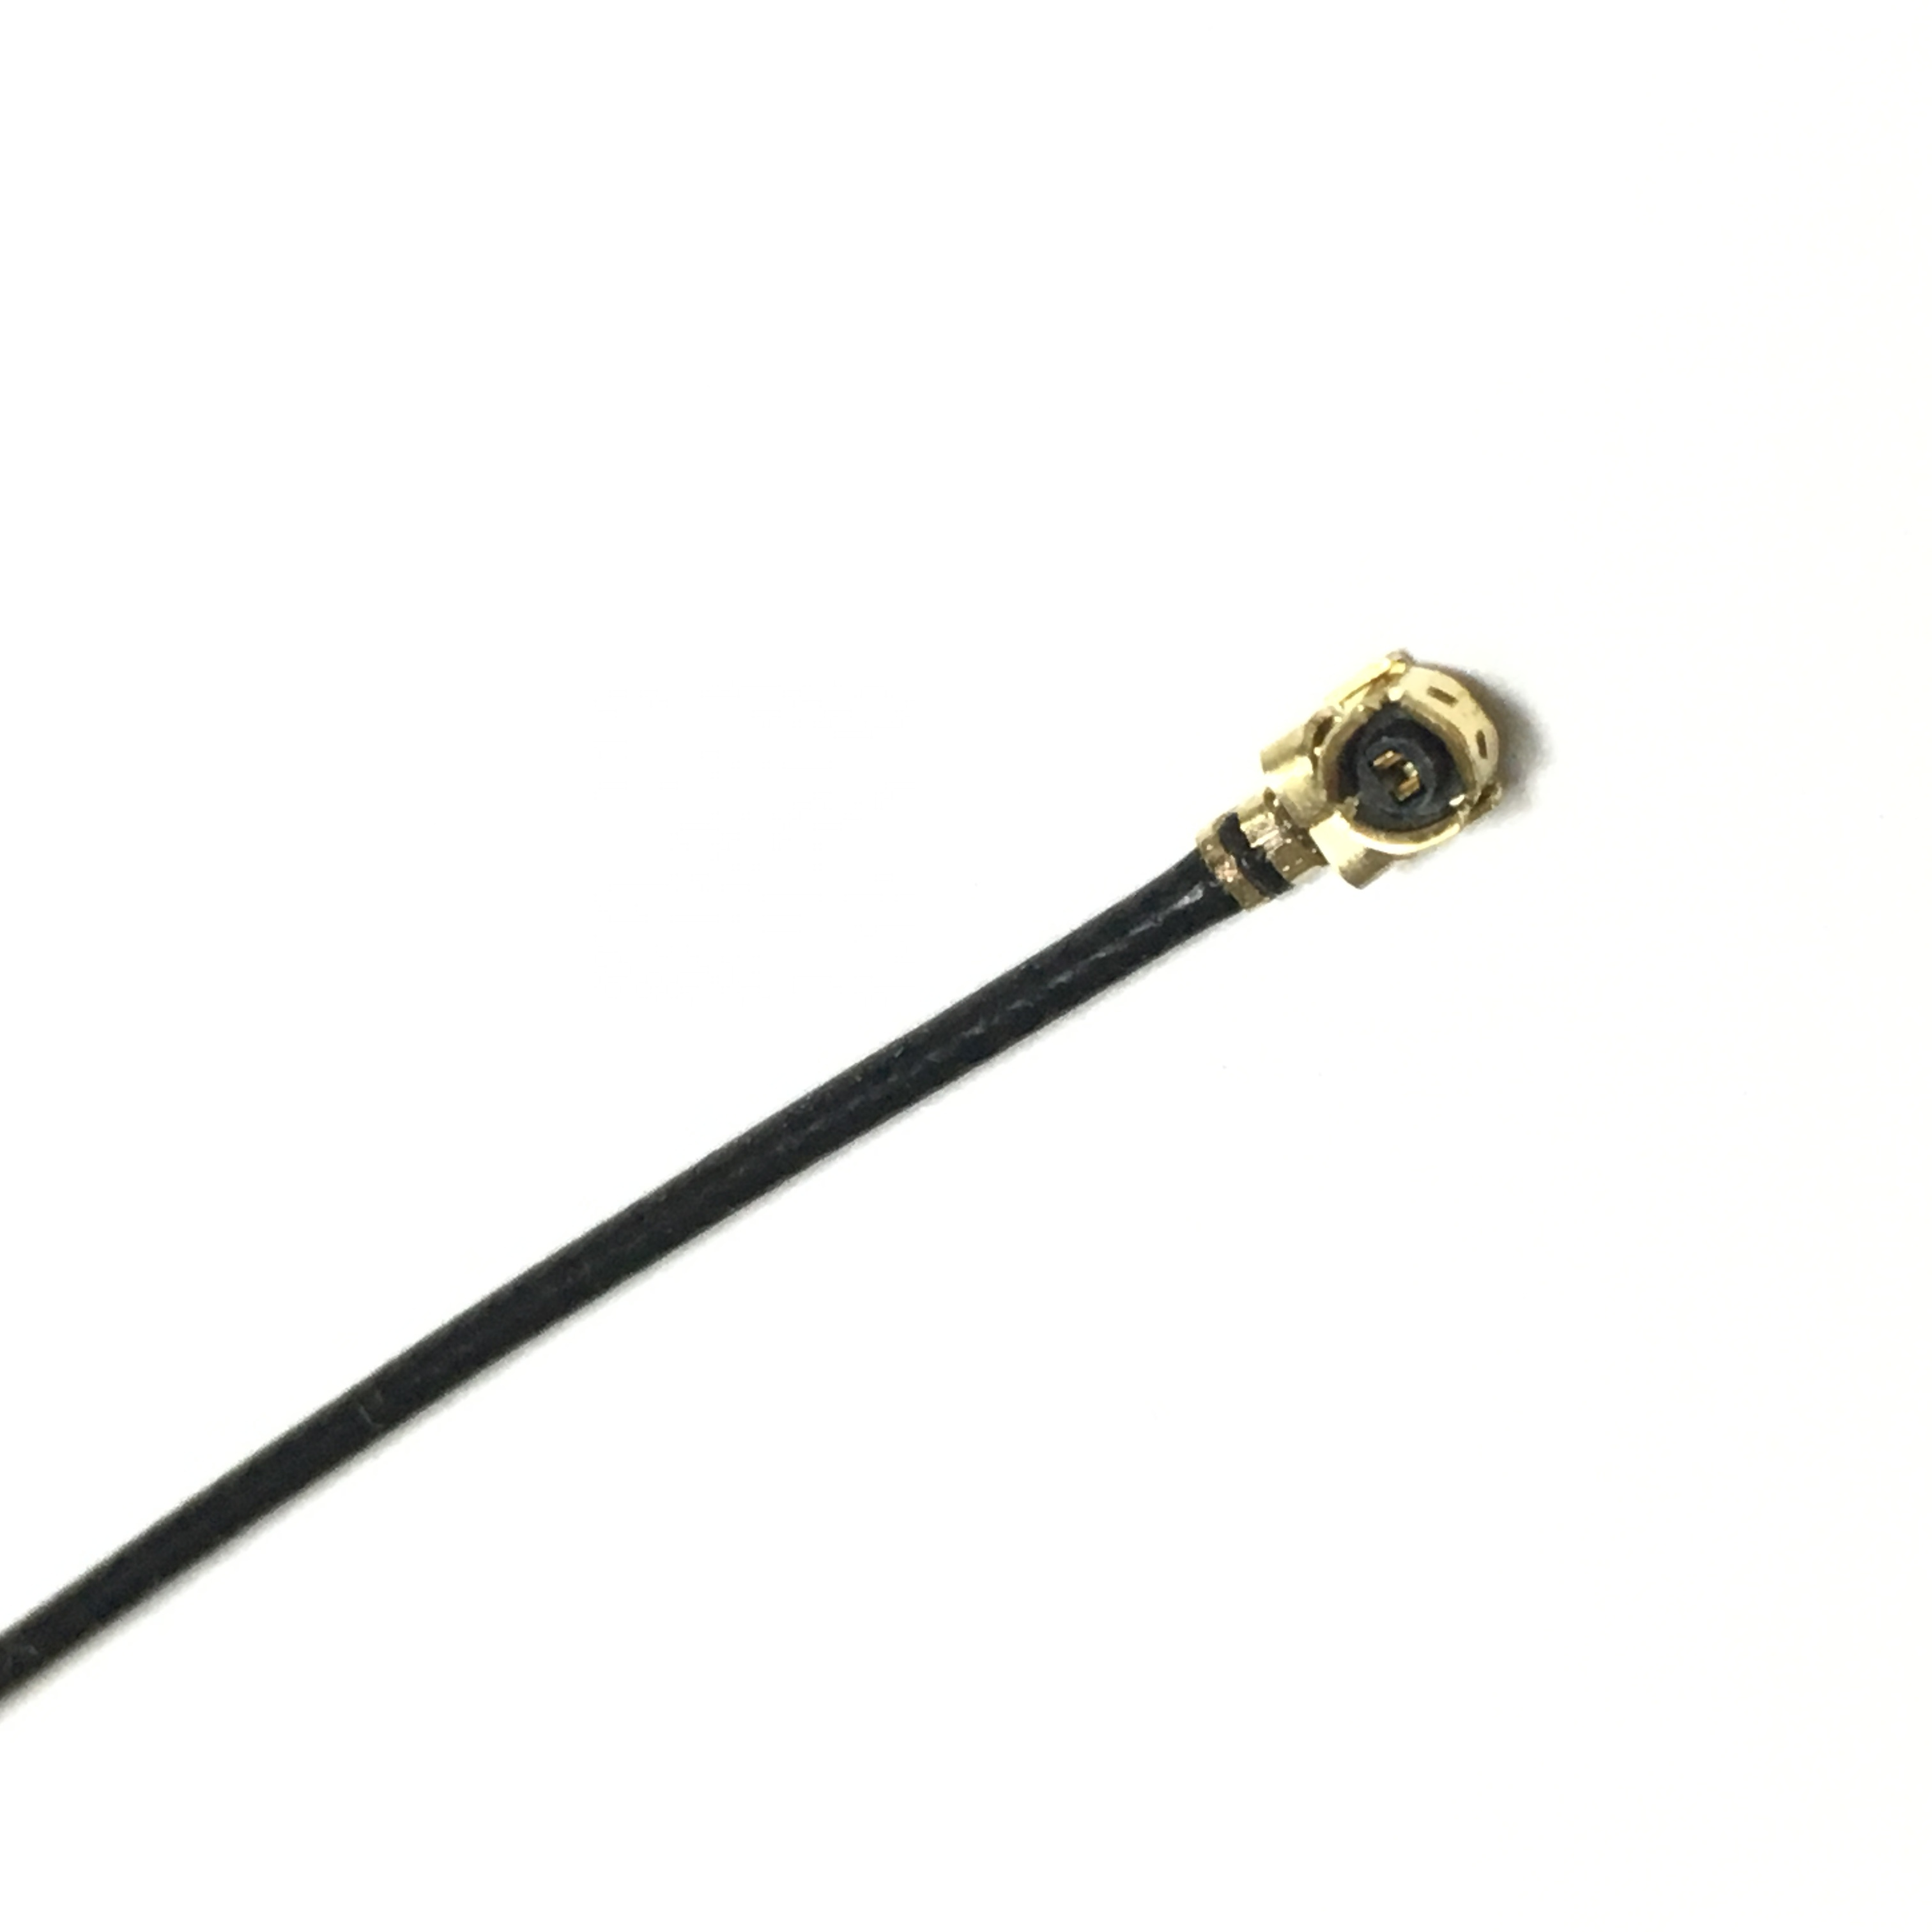 Taidacent I-PEX RG1.13 อะแดปเตอร์สาย UFL RF Connector UFL Coaxial อะแดปเตอร์ RF Coaxial Connector RF Antenna Extension Cable